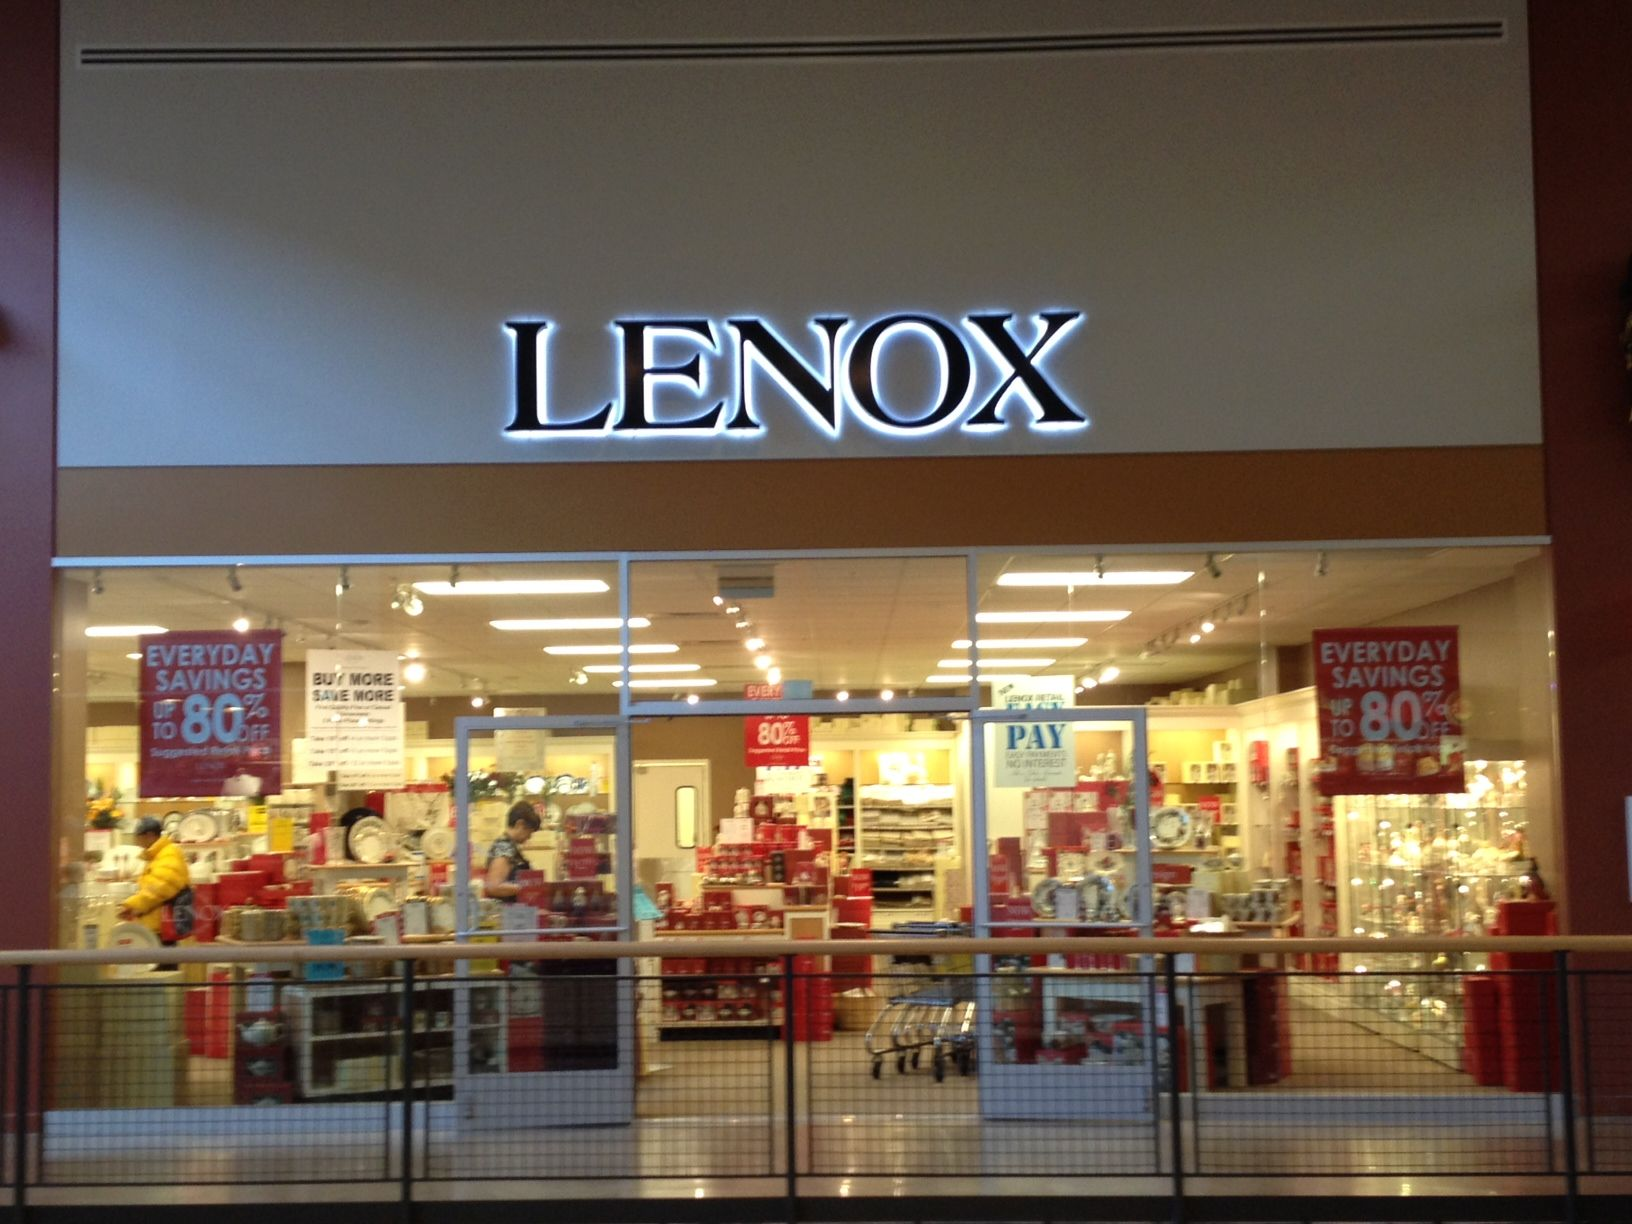 Lenox Outlet Store. Lenox, Suggested retail price